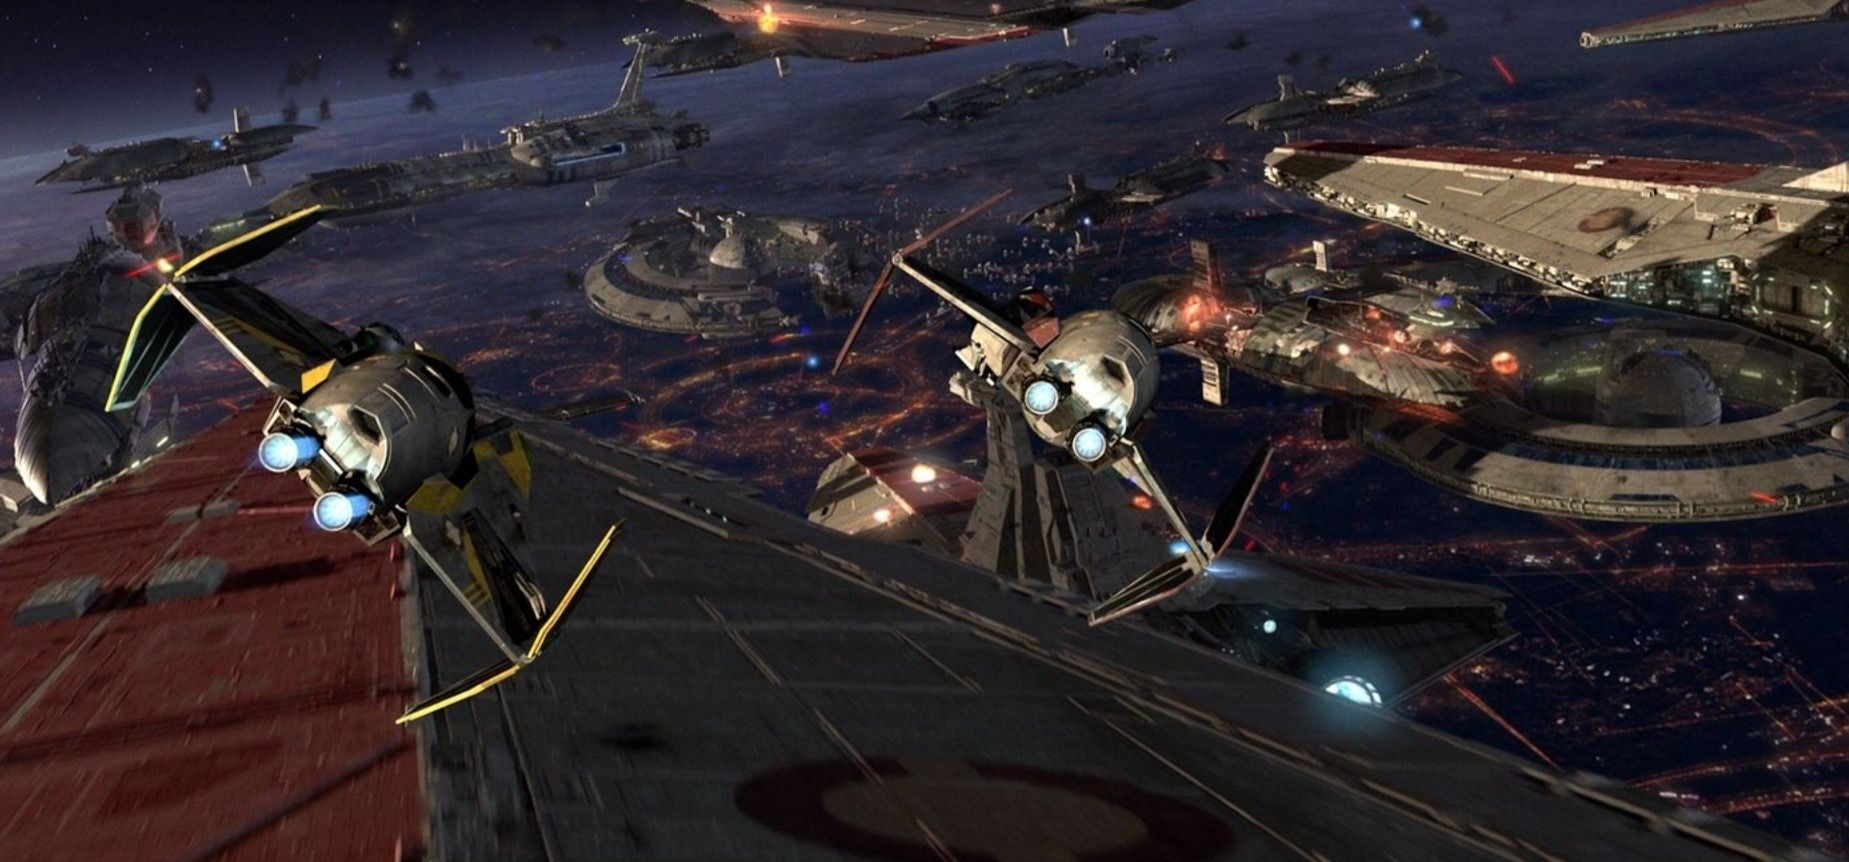 Star Wars Space Battle Wallpaper Star Wars History Star Wars